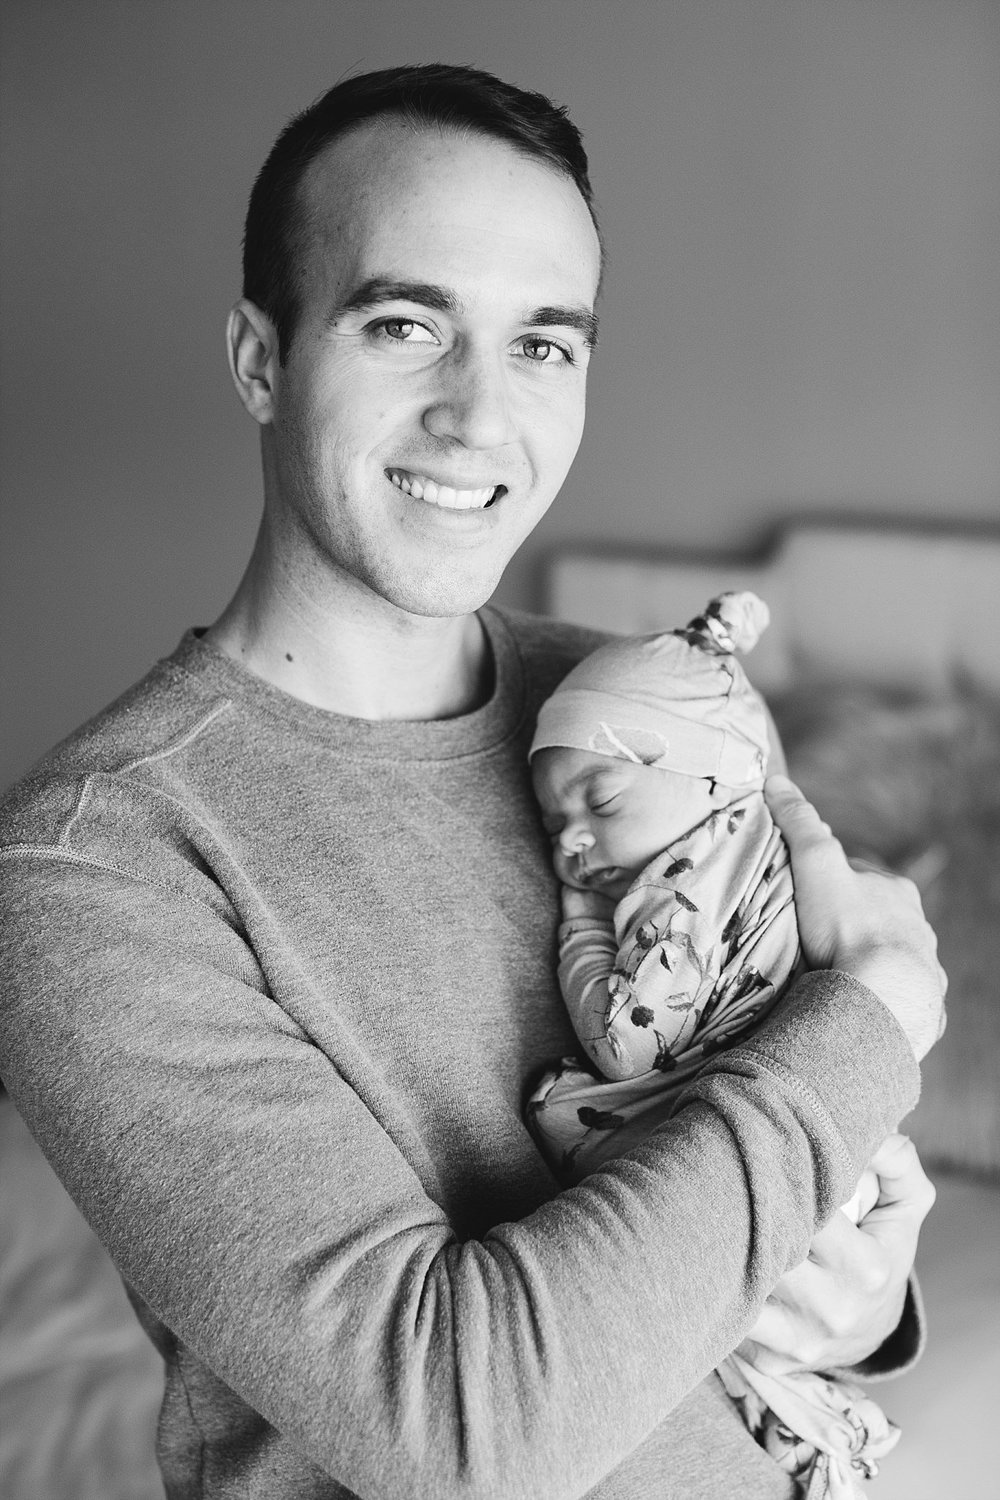 oklahoma-city-photographers-newborn-studio-dad-baby-black-white.jpg